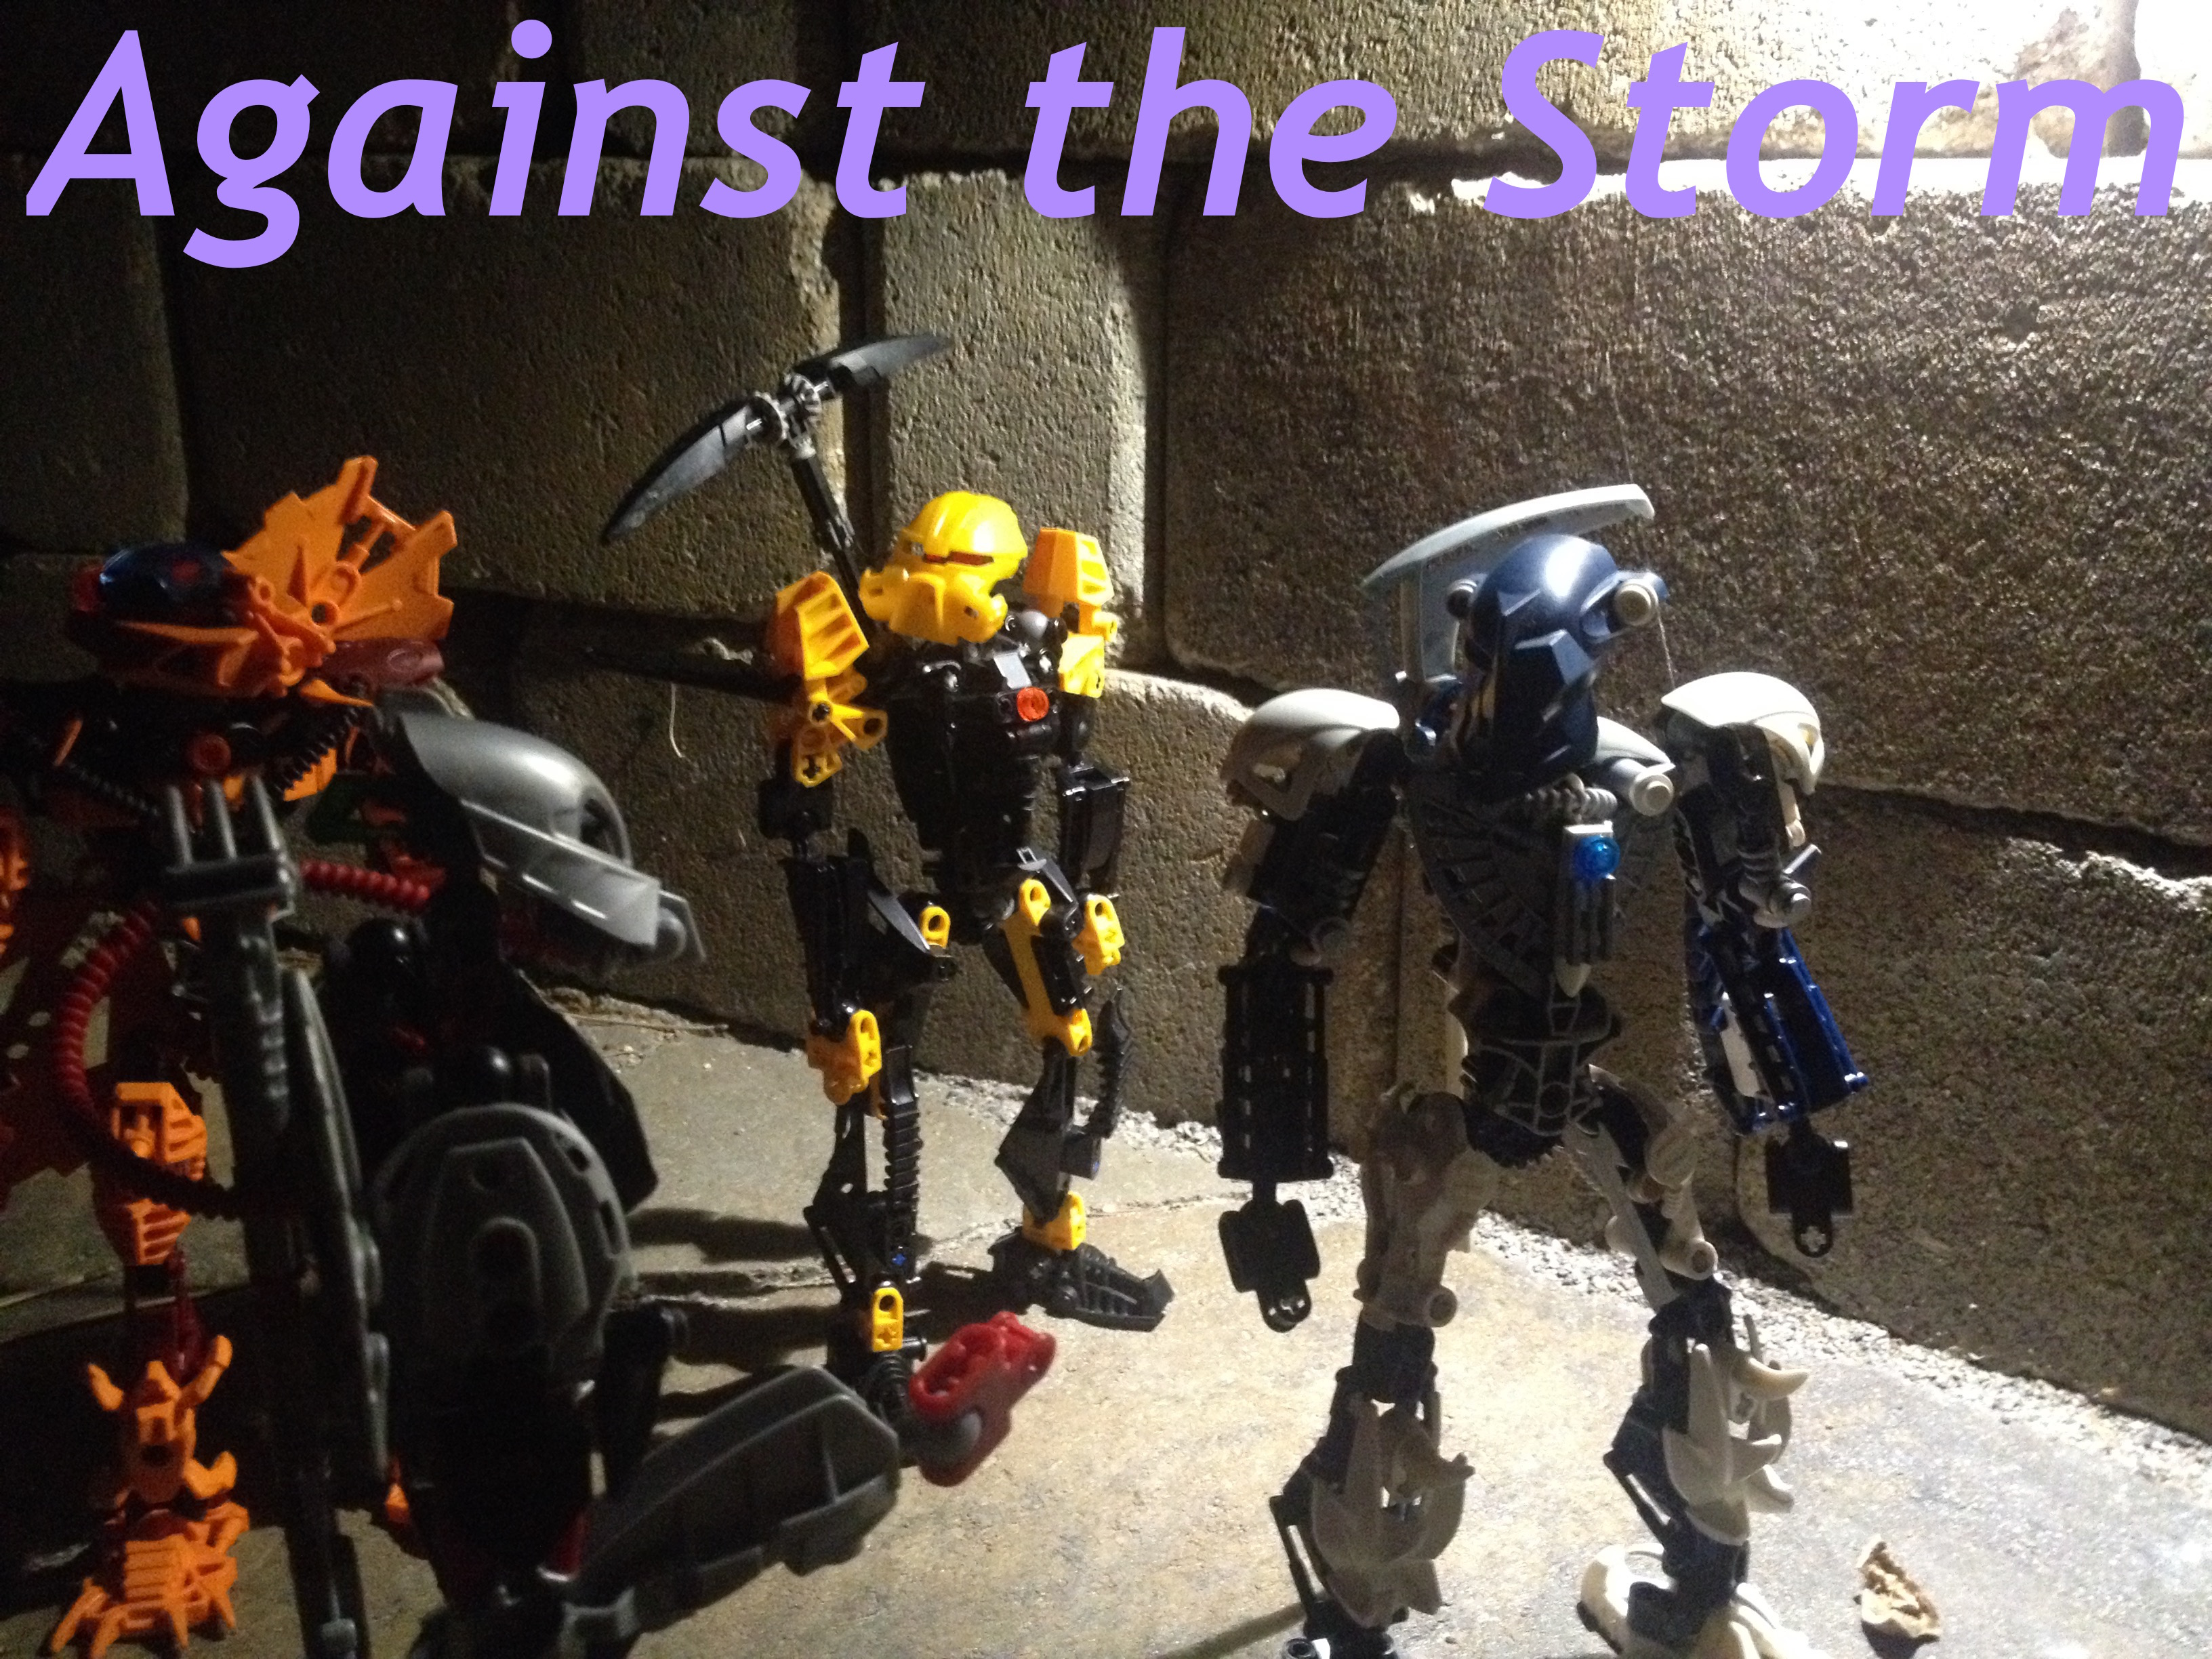 Against the Storm/Volume III